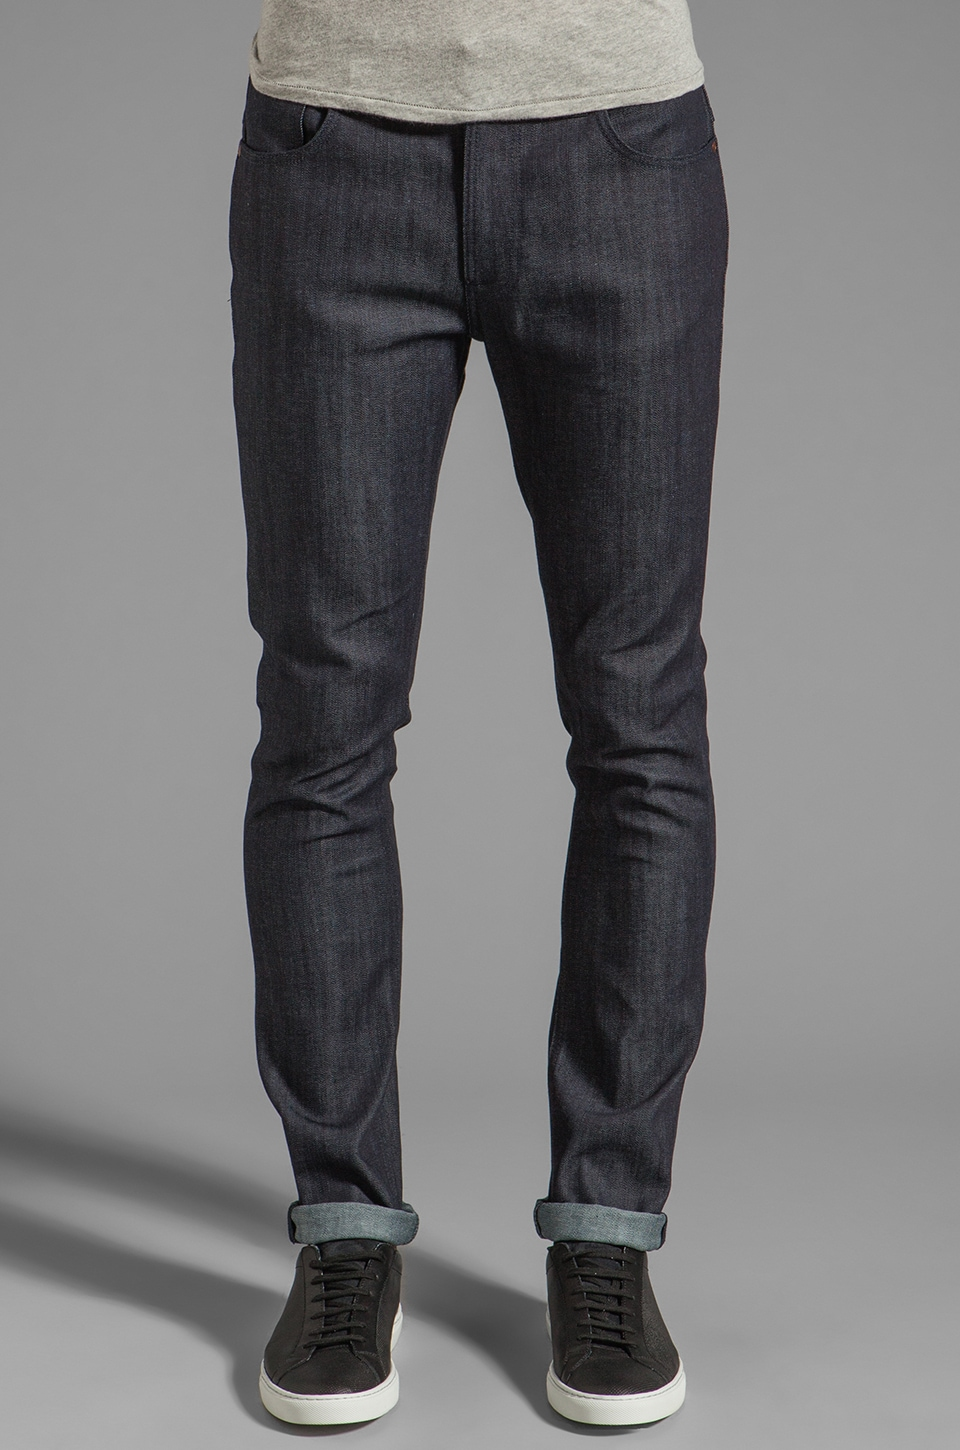 Nudie Jeans Tape Ted in Org Dry Grey Embo